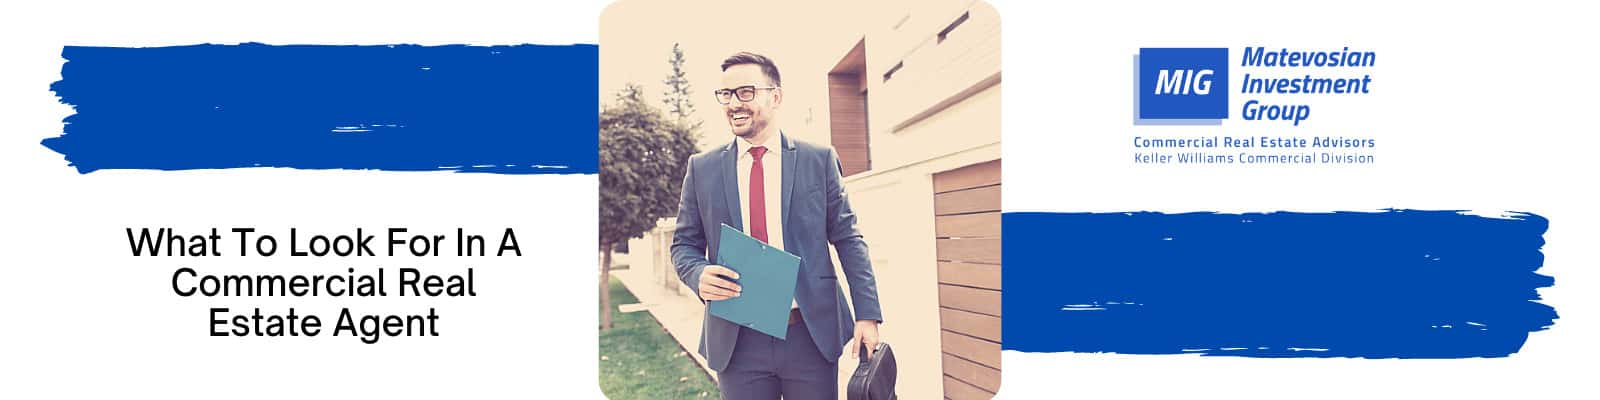 What to look for in a commercial real estate agent?